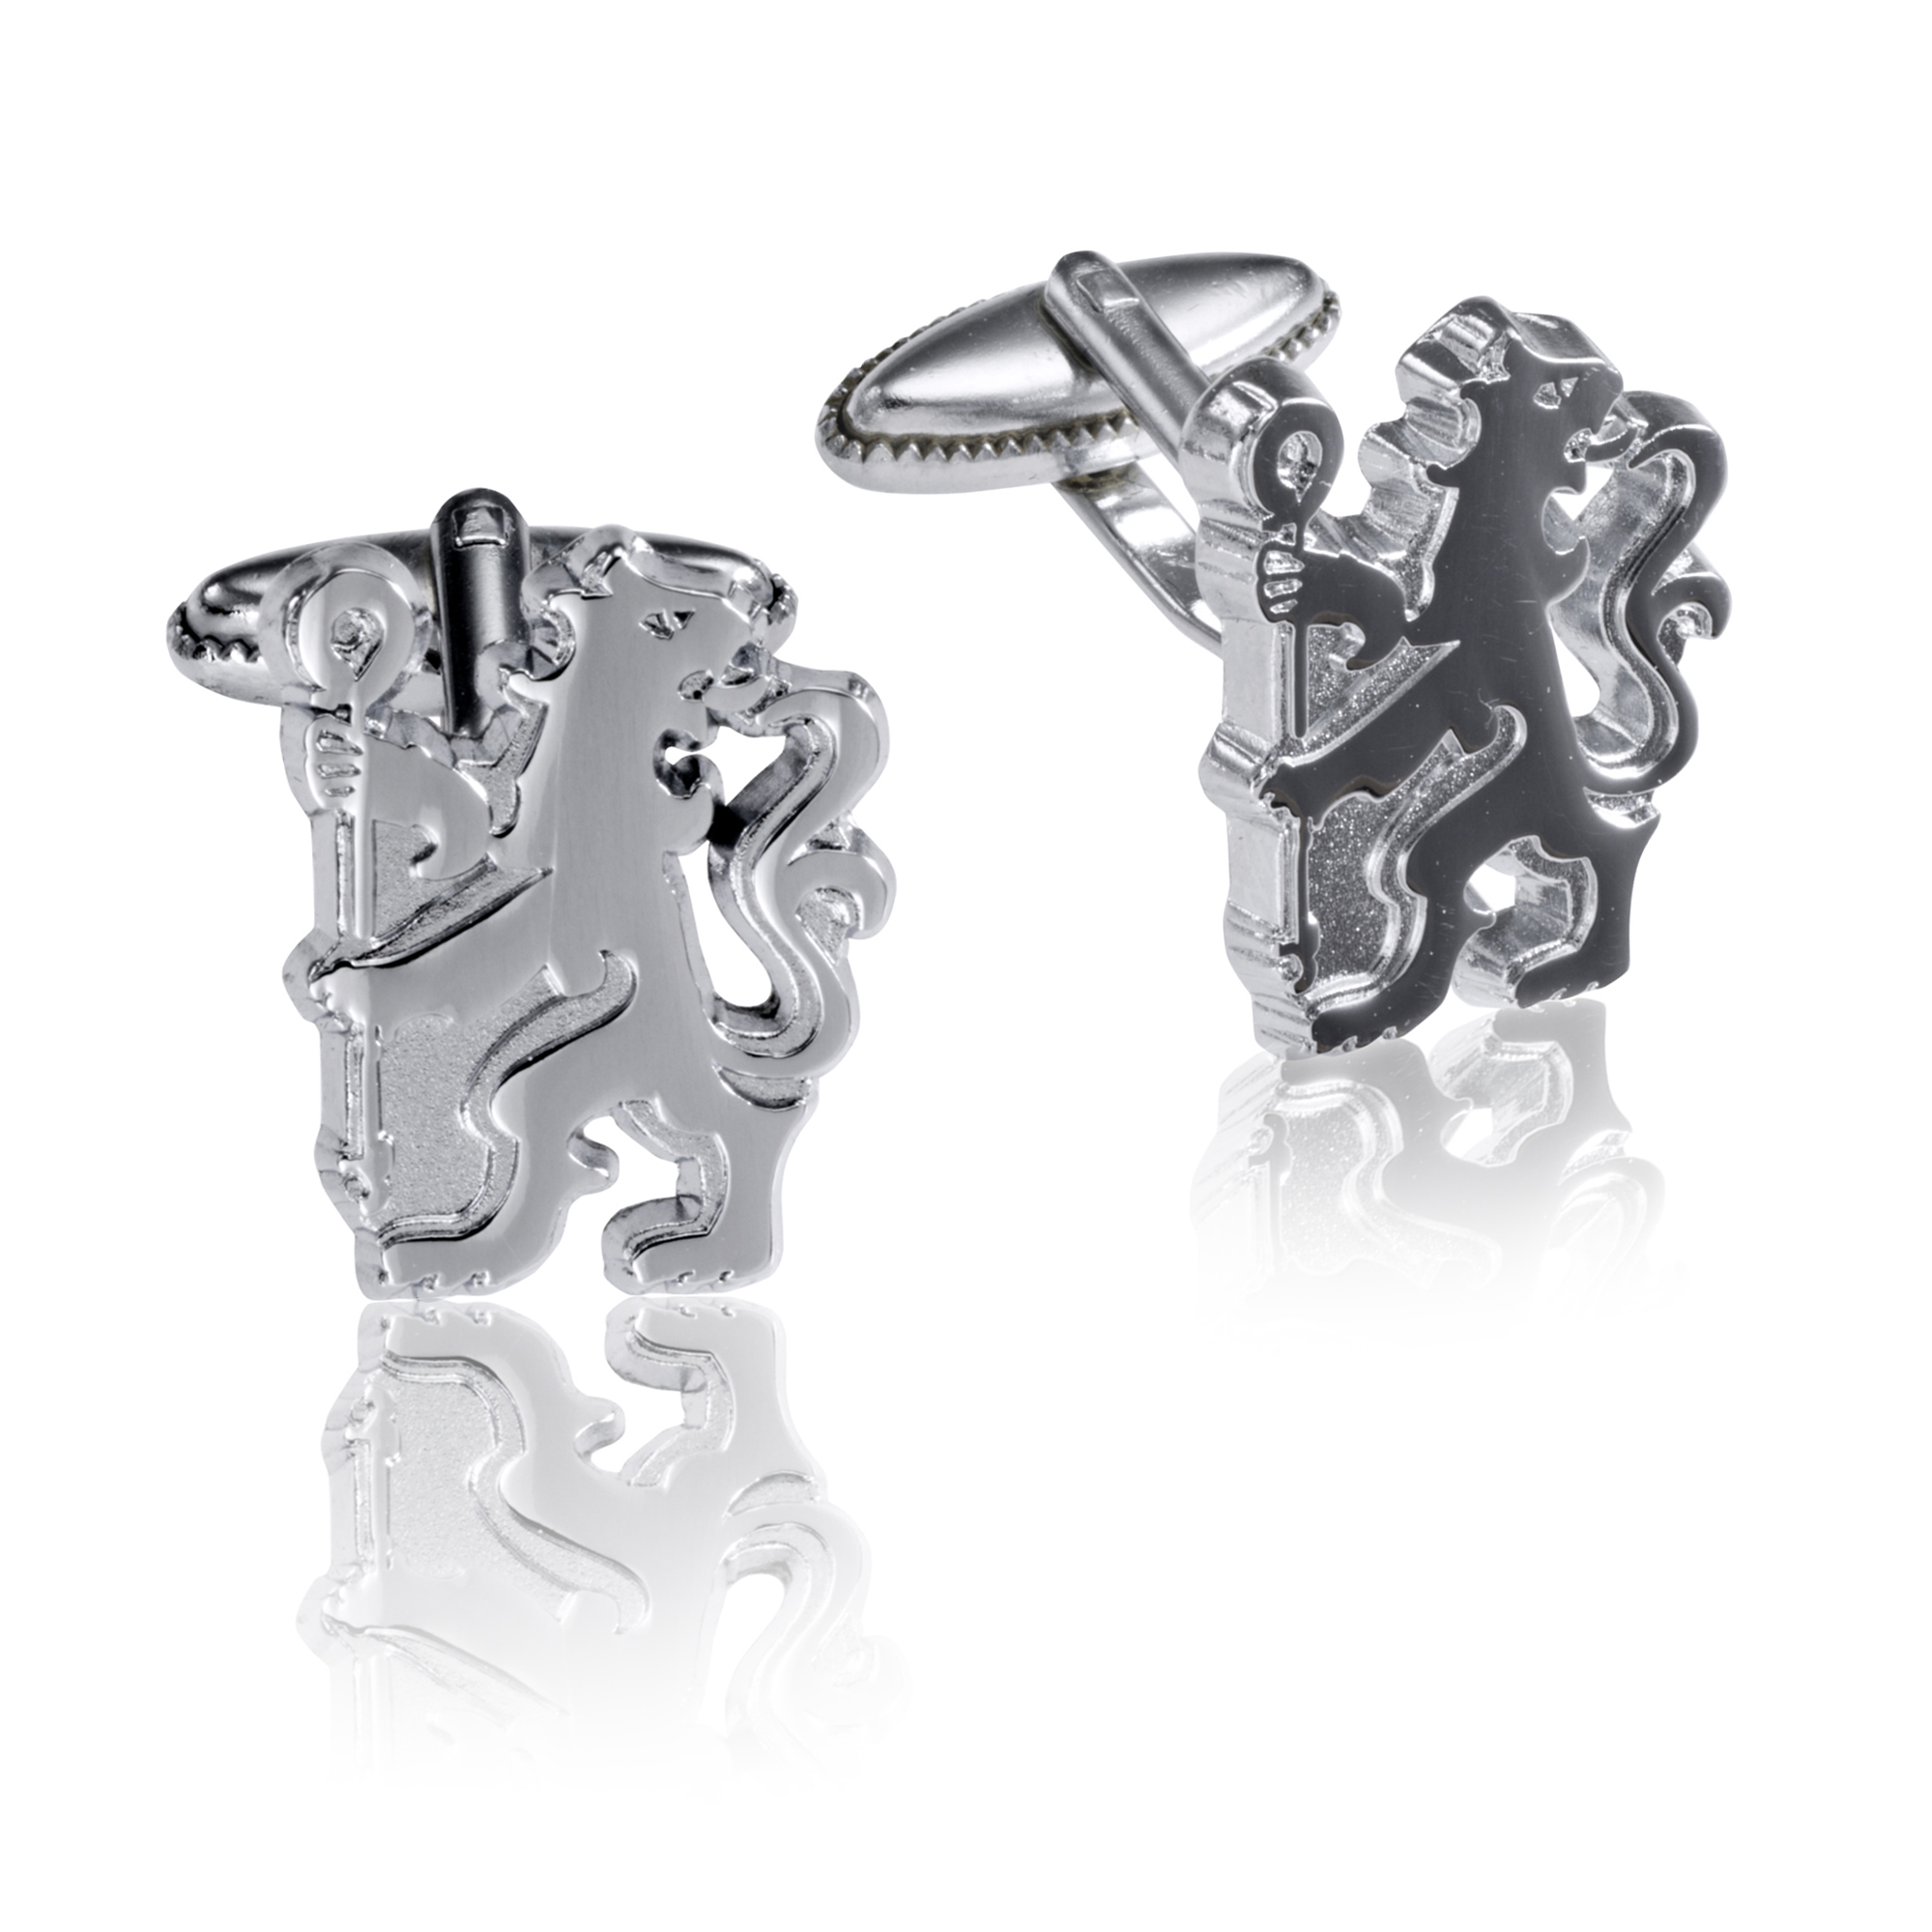 Chelsea Lion Chrome Cufflinks